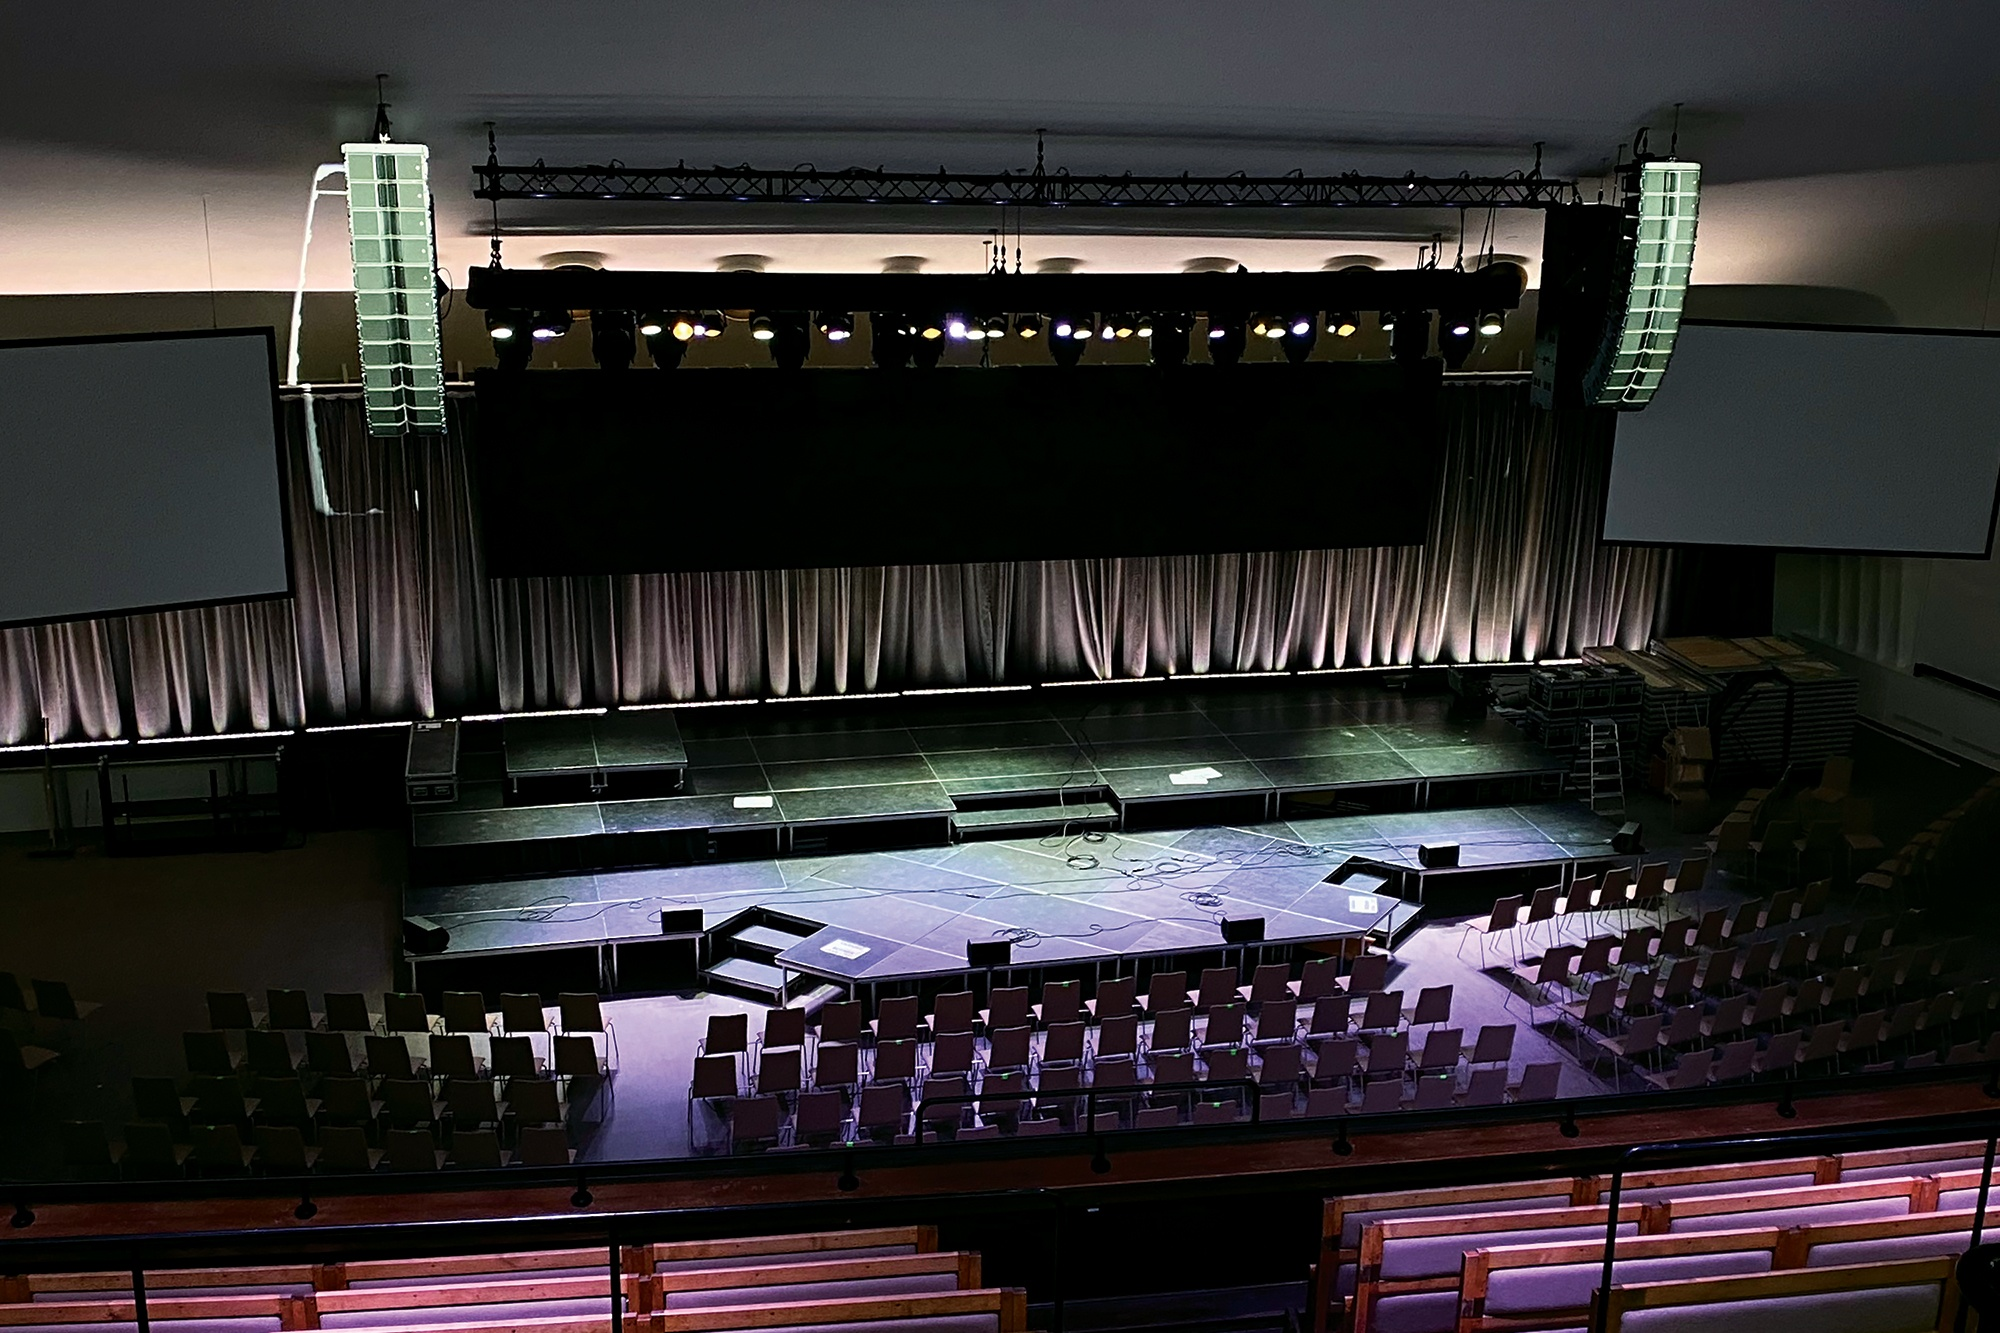 L-Acoustics Provides Flexible Solution for Filadelfiakyrkan's New Space featured image